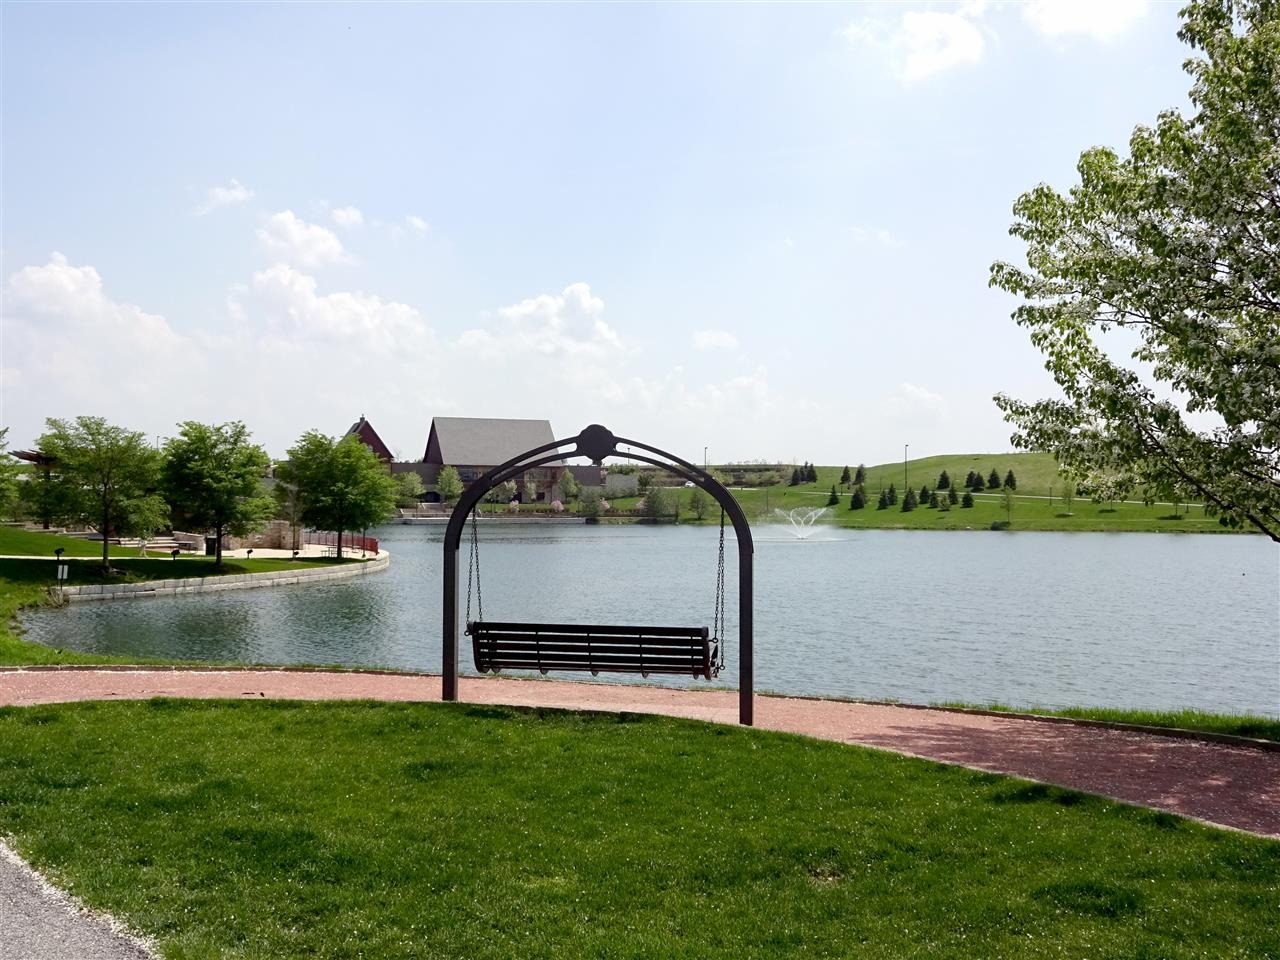 Swing overlooking the fishing pond and event facility at Centennial Park in Munster, Indiana.